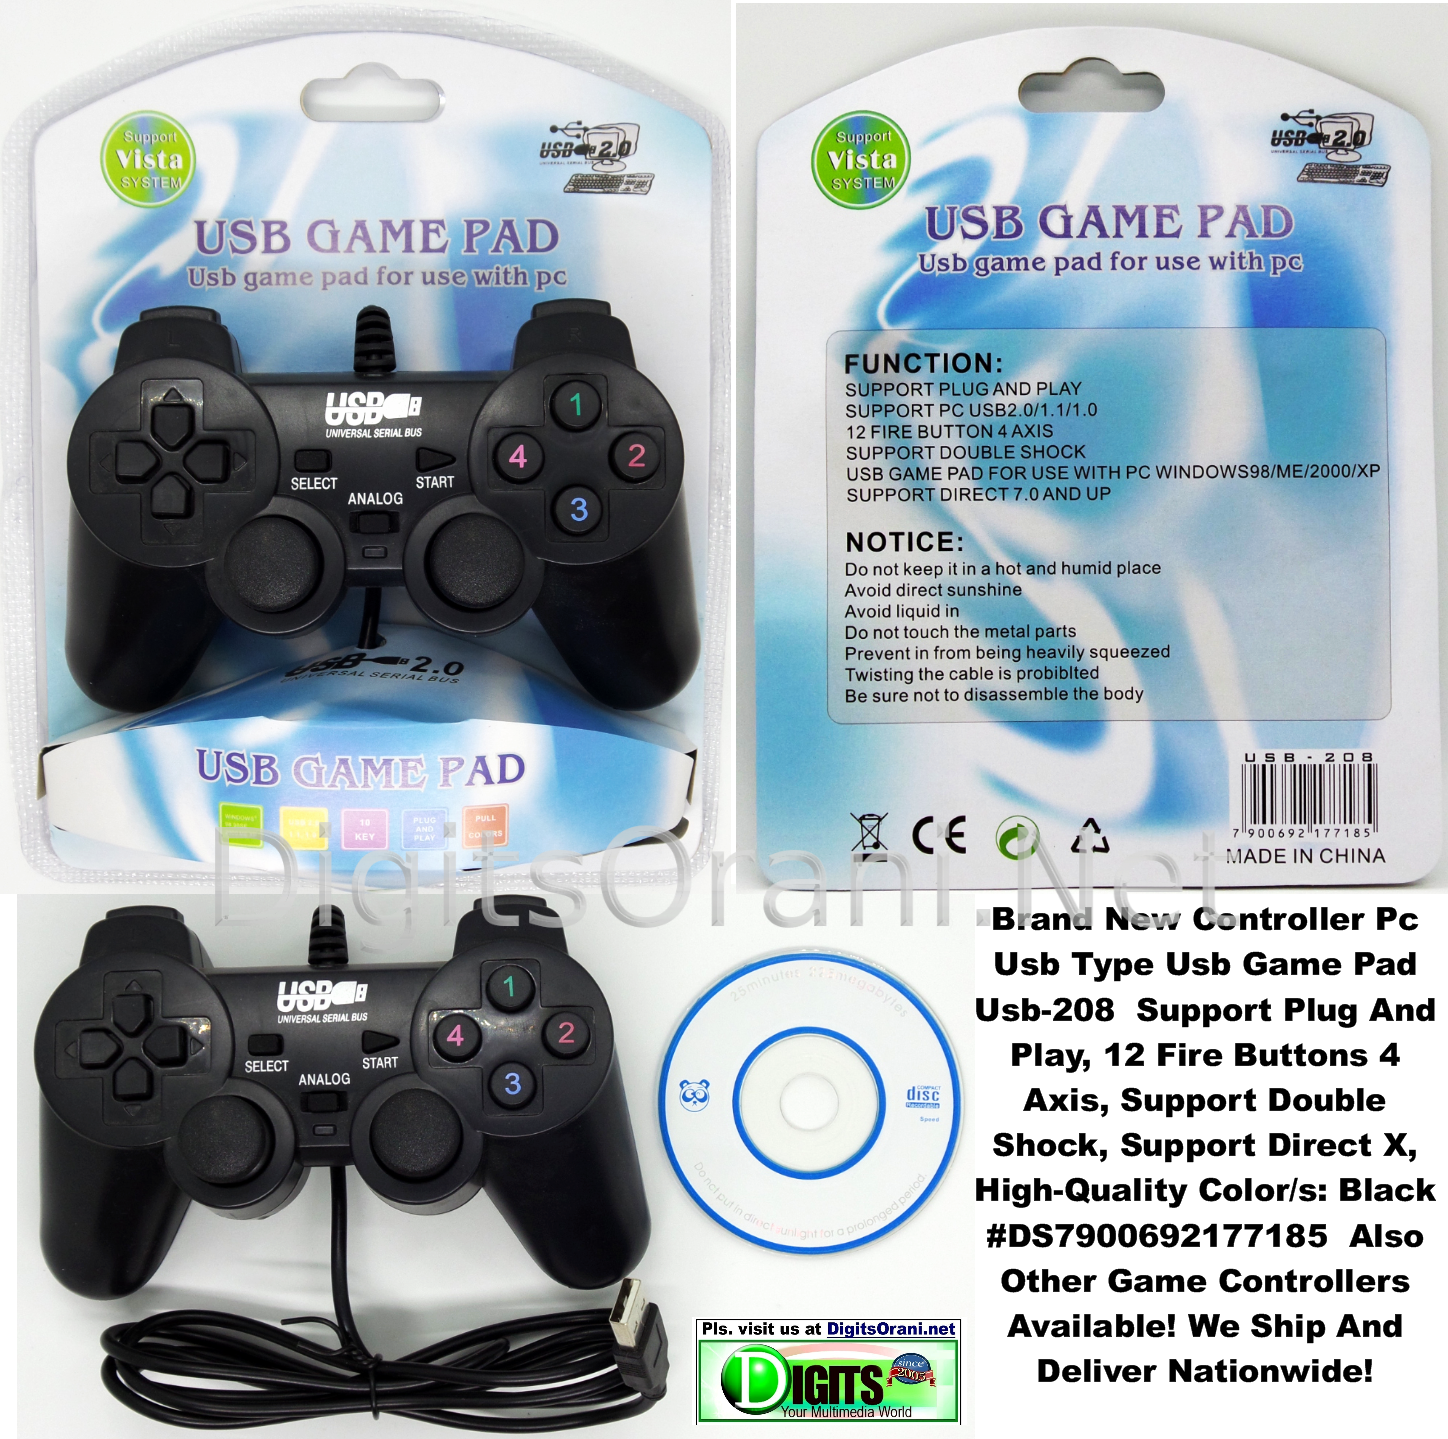 PC Game Controller Usb Game Pad Usb-208 Support Plug And Play, 12 Fire  Buttons 4 Axis, Support Double Shock, Support Direct X, High-Quality